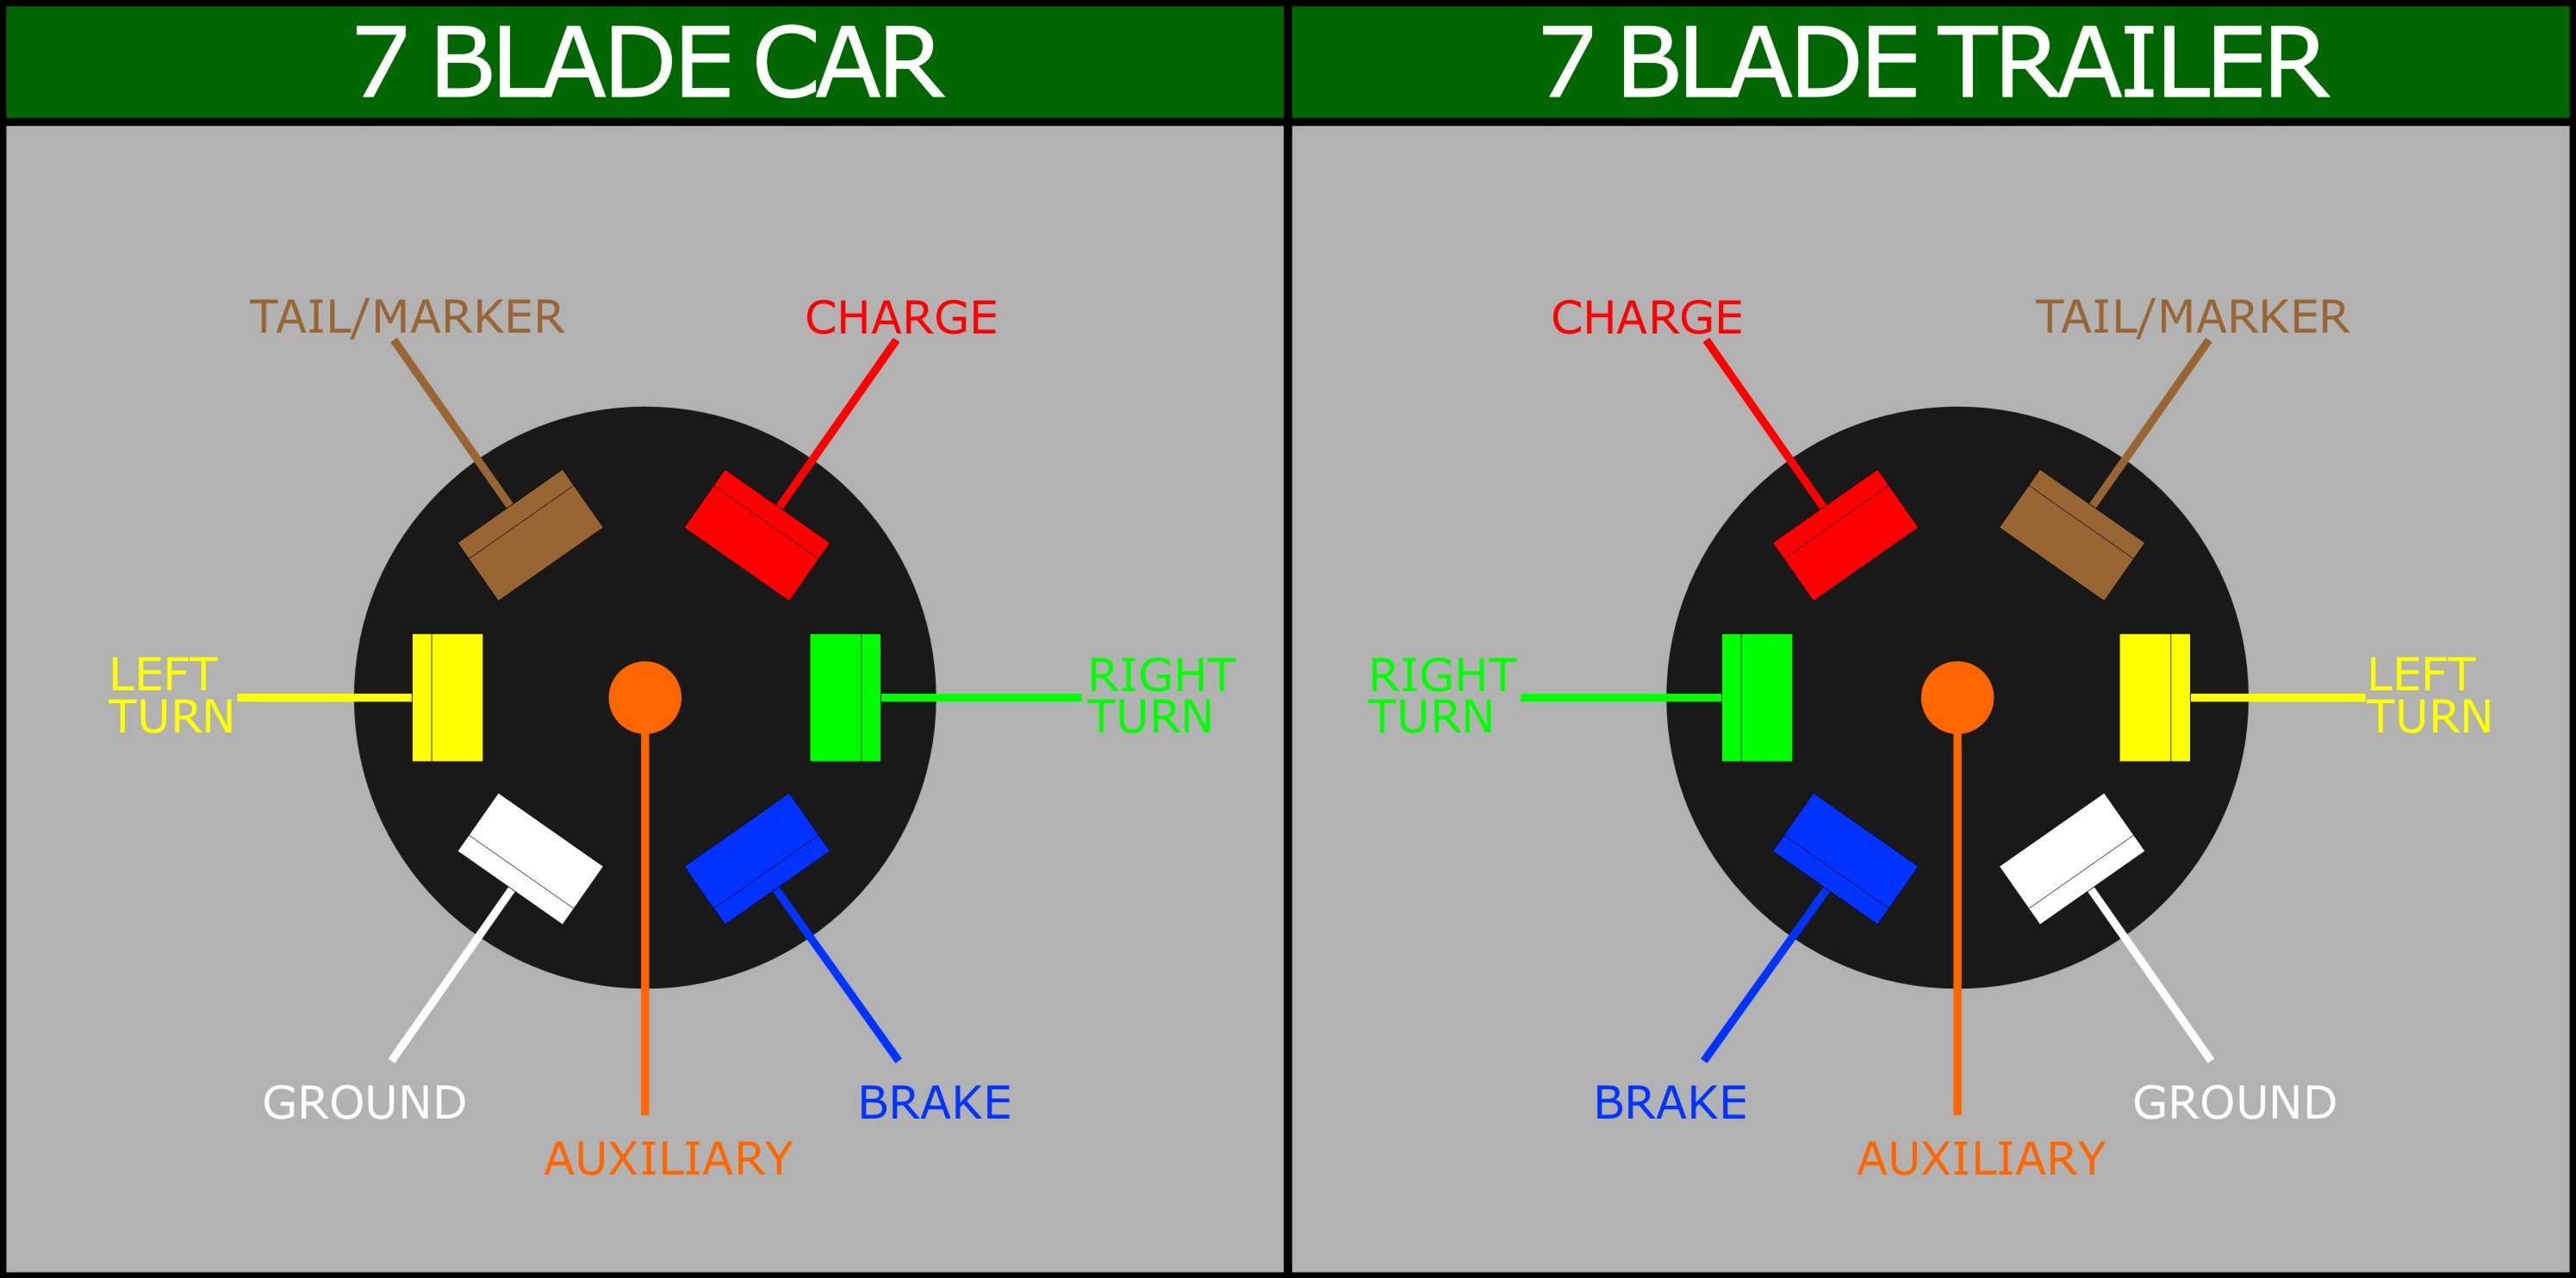 Wiring a 7 Blade Harness or Plug on car audio install diagrams, auto frame diagrams, auto diagnostics, chevy truck diagrams, auto steering diagrams, auto interior diagrams, blank diagrams, zenith carburetors diagrams, electrical diagrams, auto blueprints, auto chassis, auto rear axle, auto lighting, auto transmission, auto tools, auto air conditioning diagrams, auto schematics, electronic circuit diagrams, auto wiring symbols, auto starter,